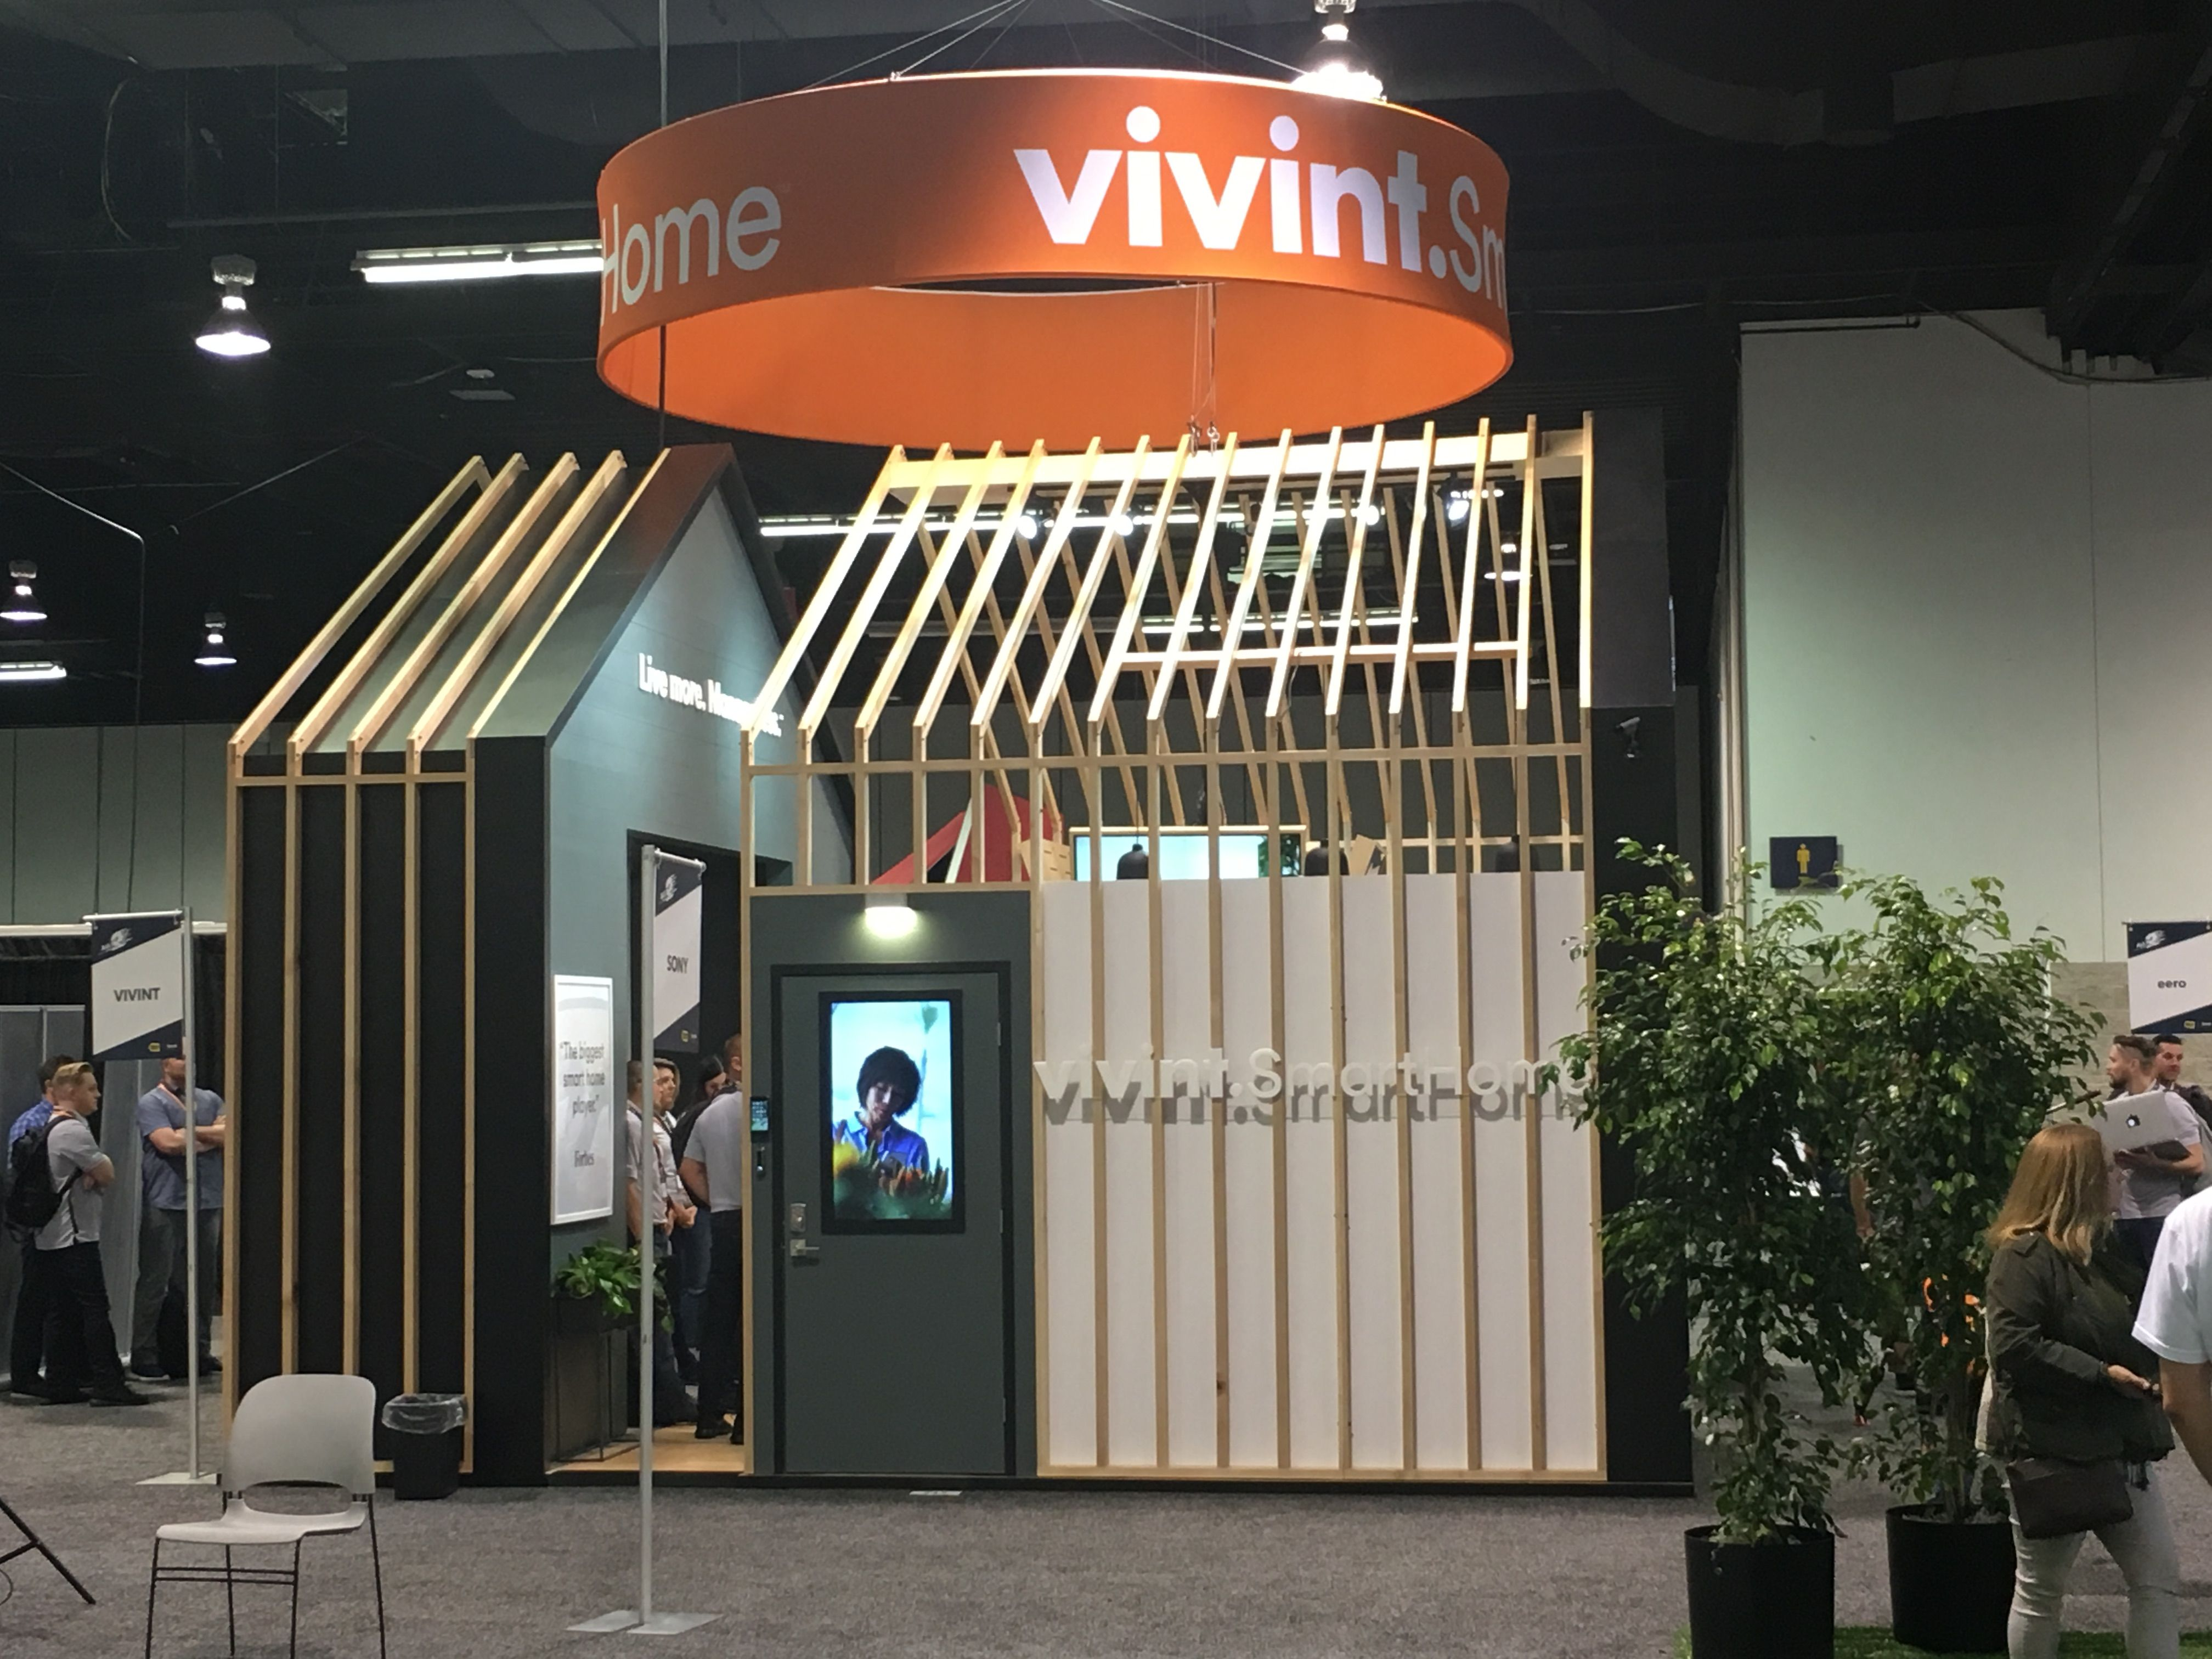 home design expo 2017 20x20 vivint smart home booth by mackenzie exhibit for the best buy holiday show 2017 tradeshow 9018